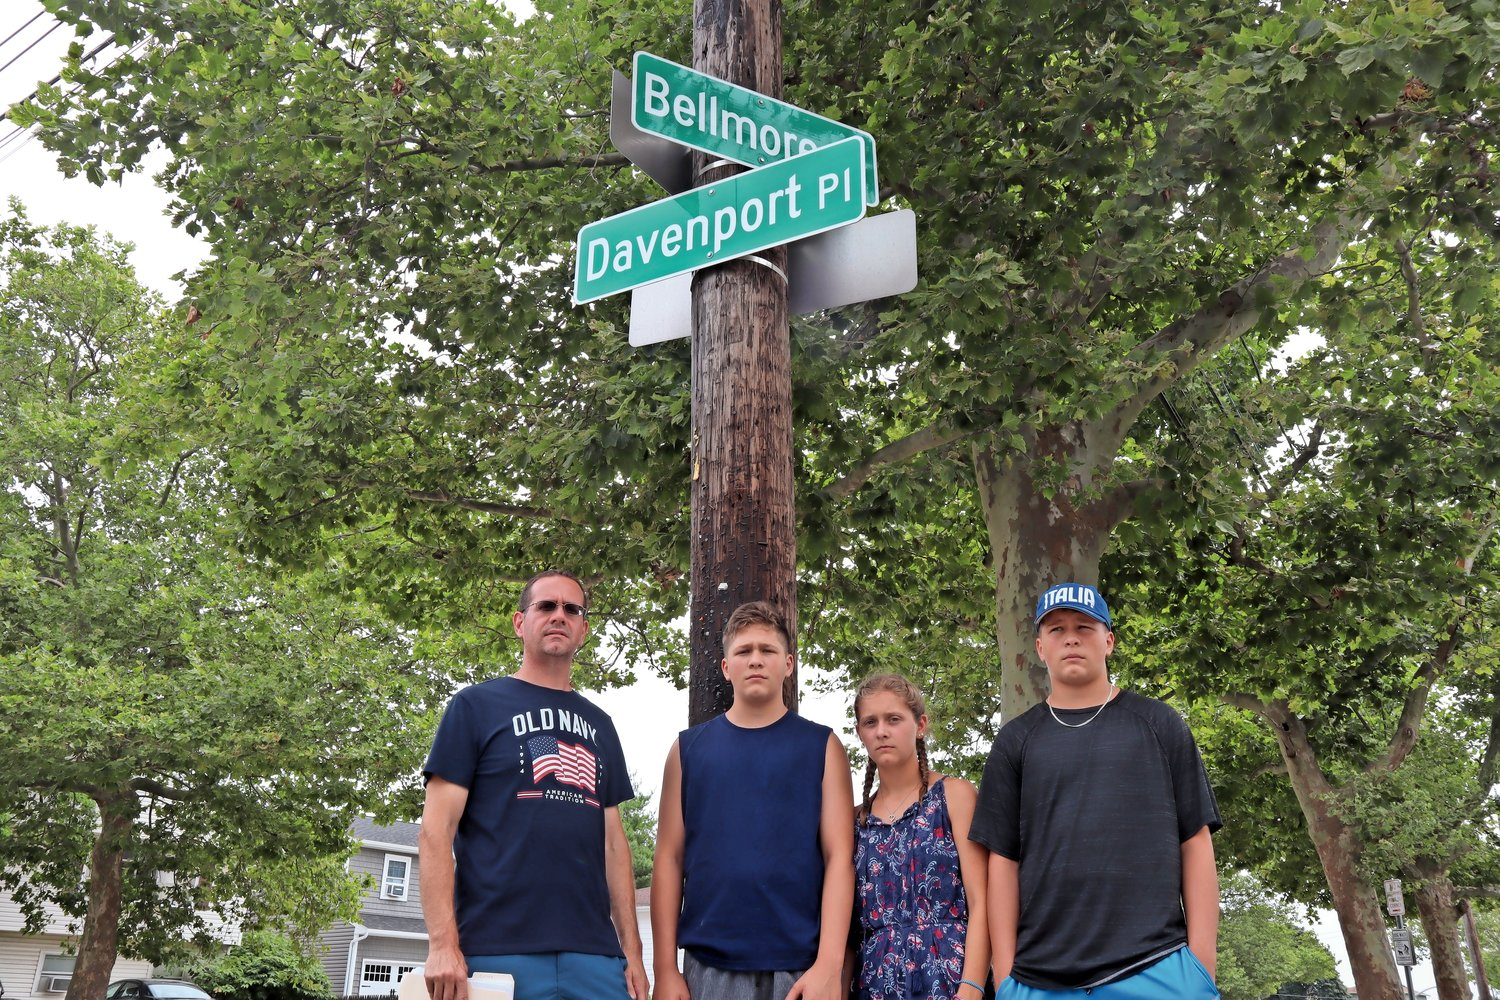 memberS of The Eremitaggio family, who live on Davenport Place, are fighting for a traffic light at the intersection of Davenport Place and Bellmore and Alice avenues in Bellmore, which they say is dangerous.